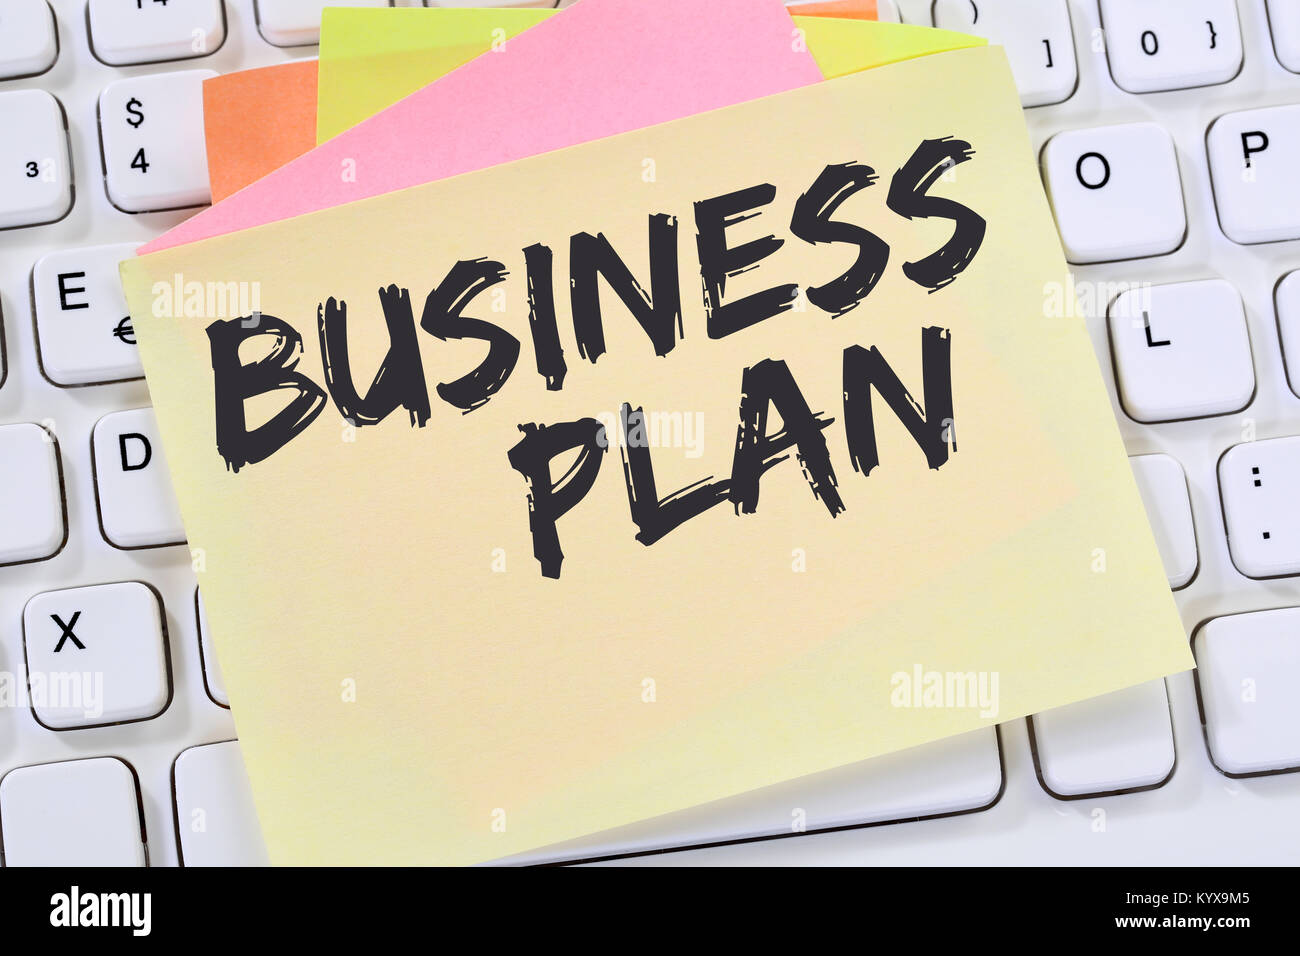 Business plan analysis strategy success concept company note paper computer keyboard - Stock Image